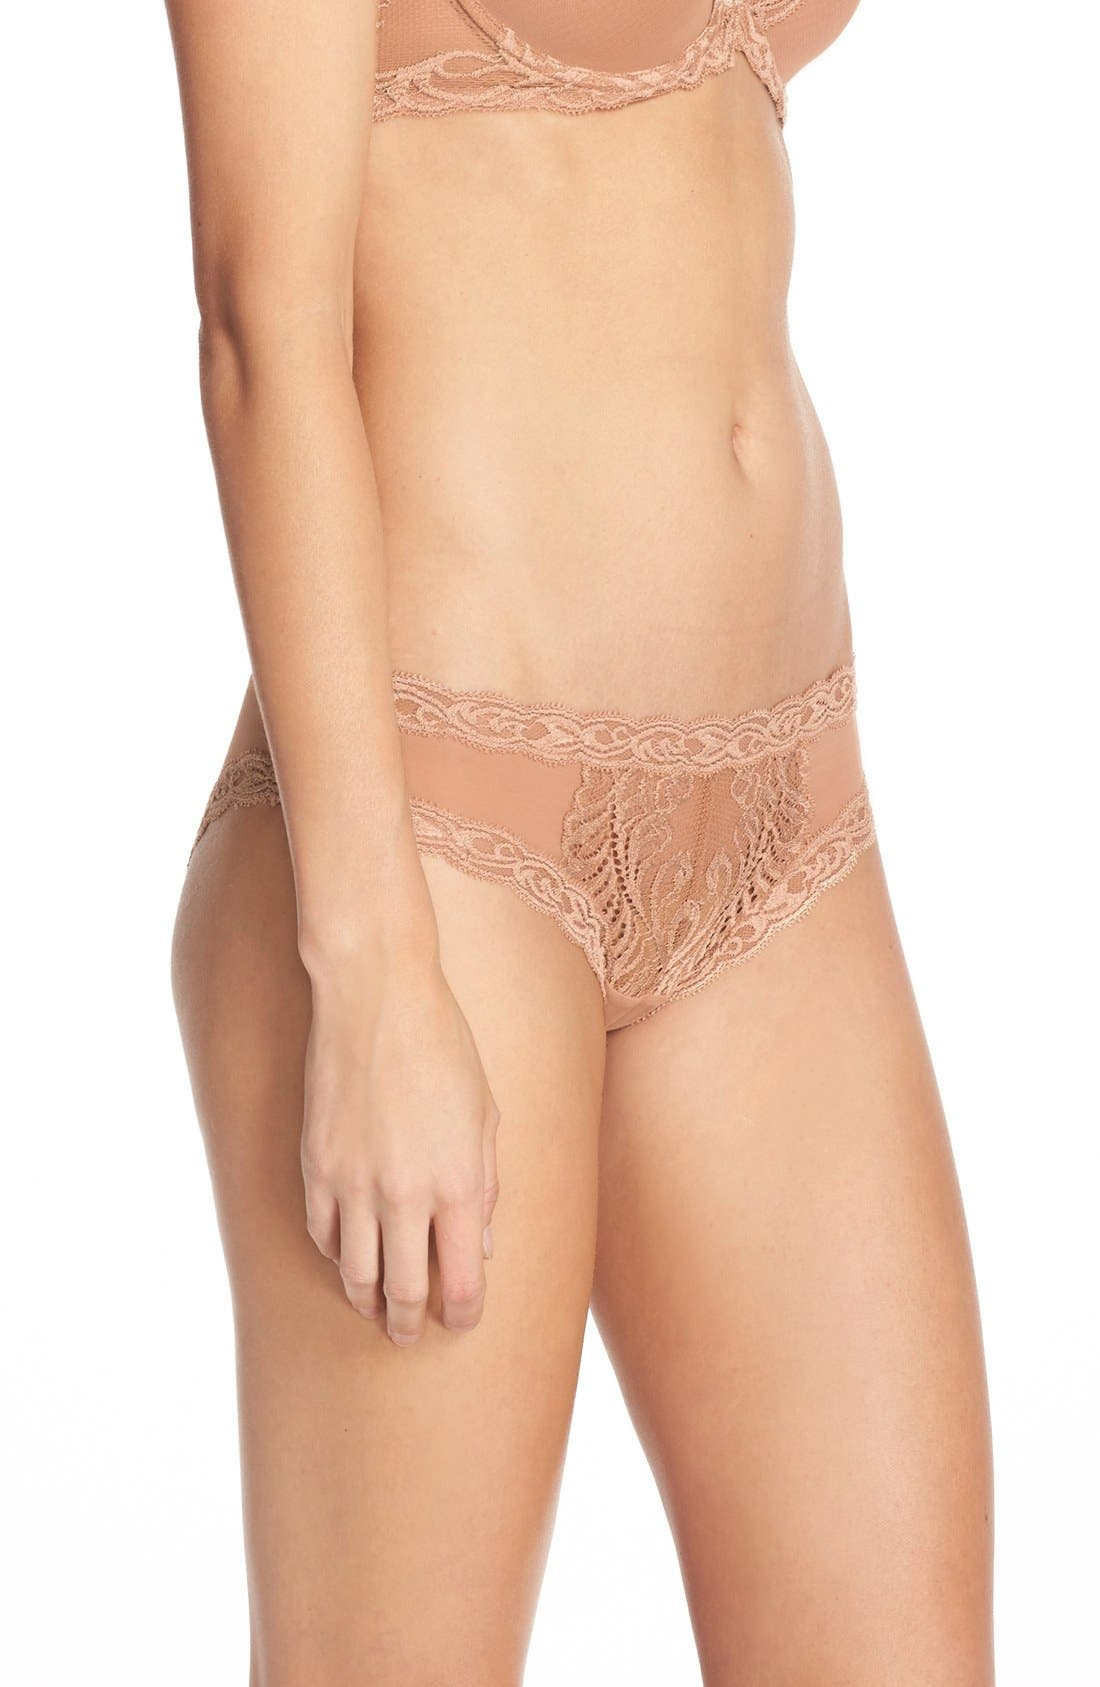 Feathers Hipster Briefs,                             Alternate thumbnail 279, color,